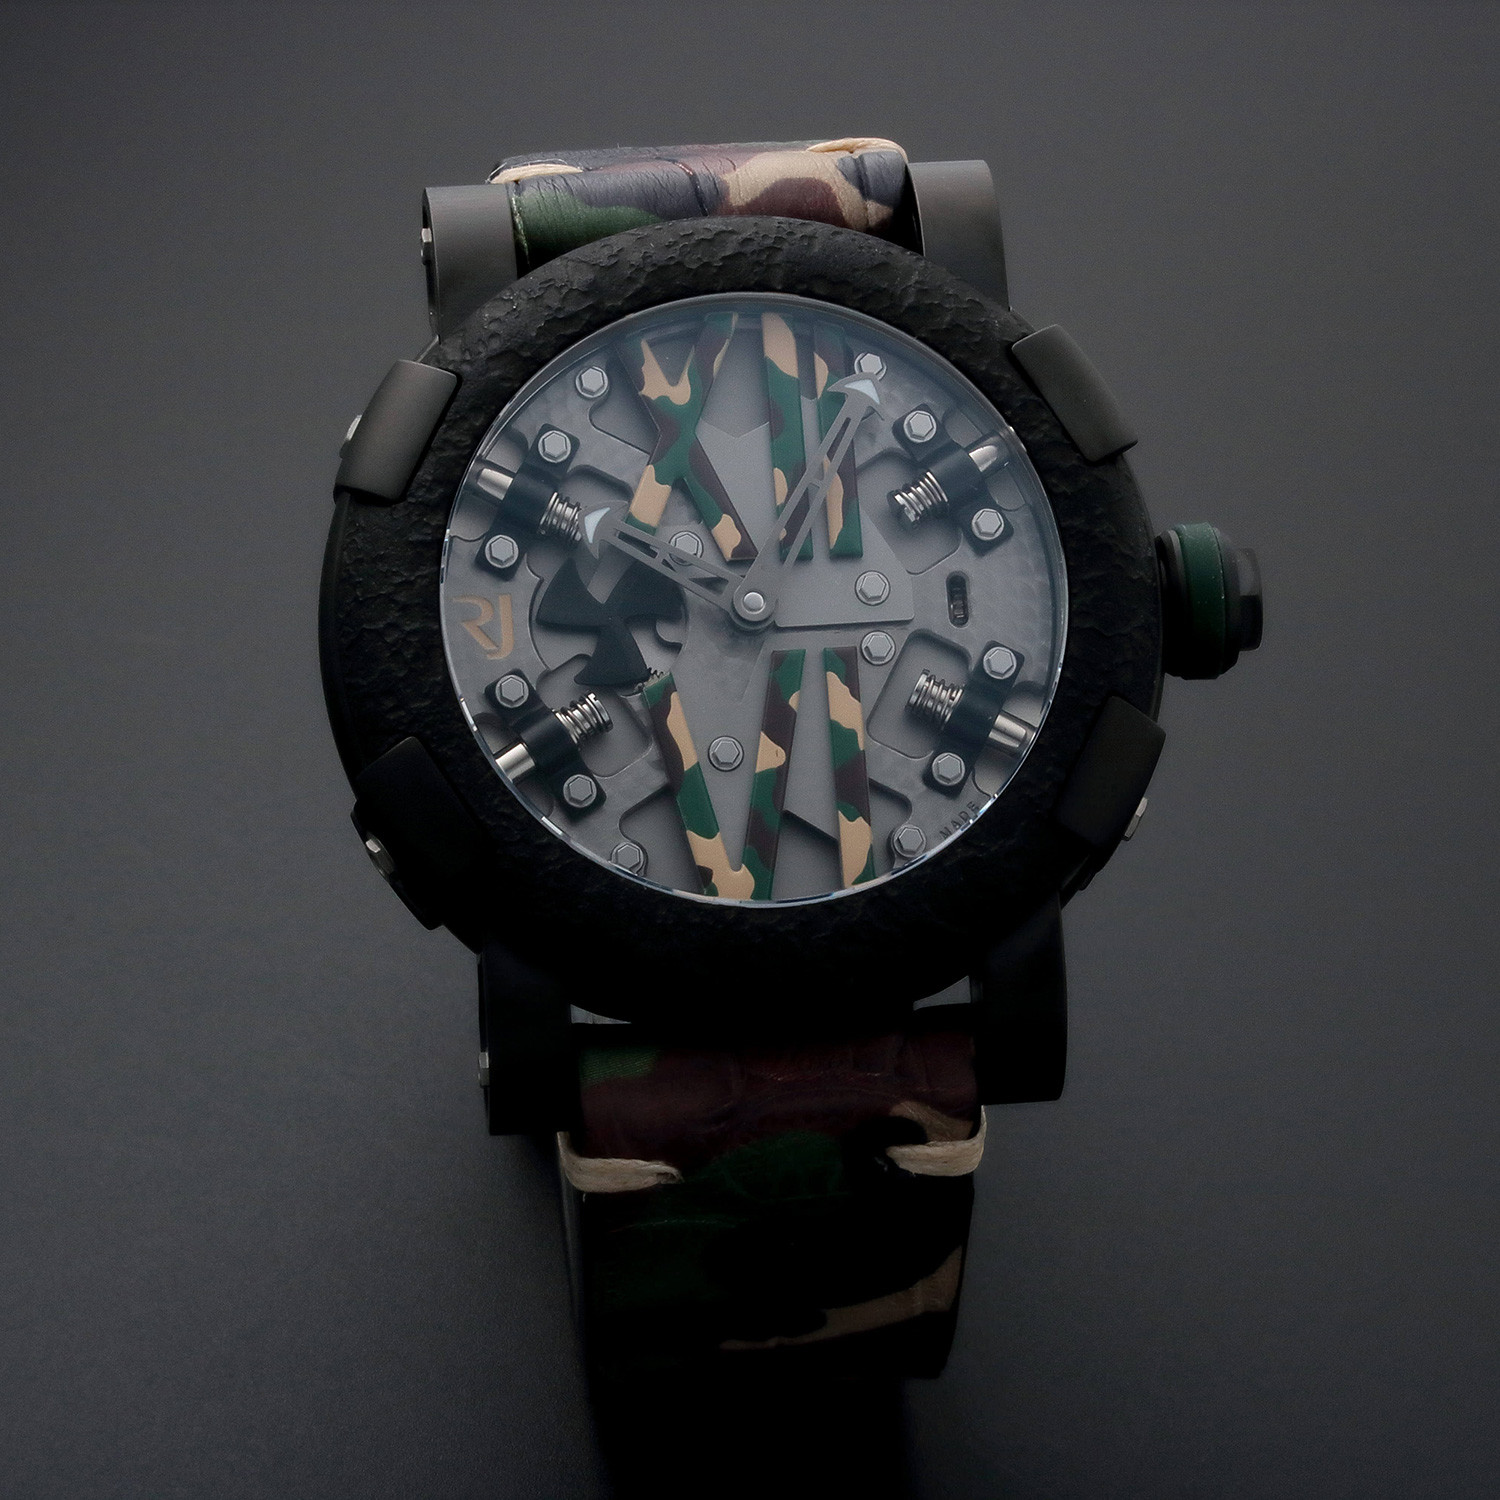 Romain jerome automatic limited edition rj t au sp for Jerome girard